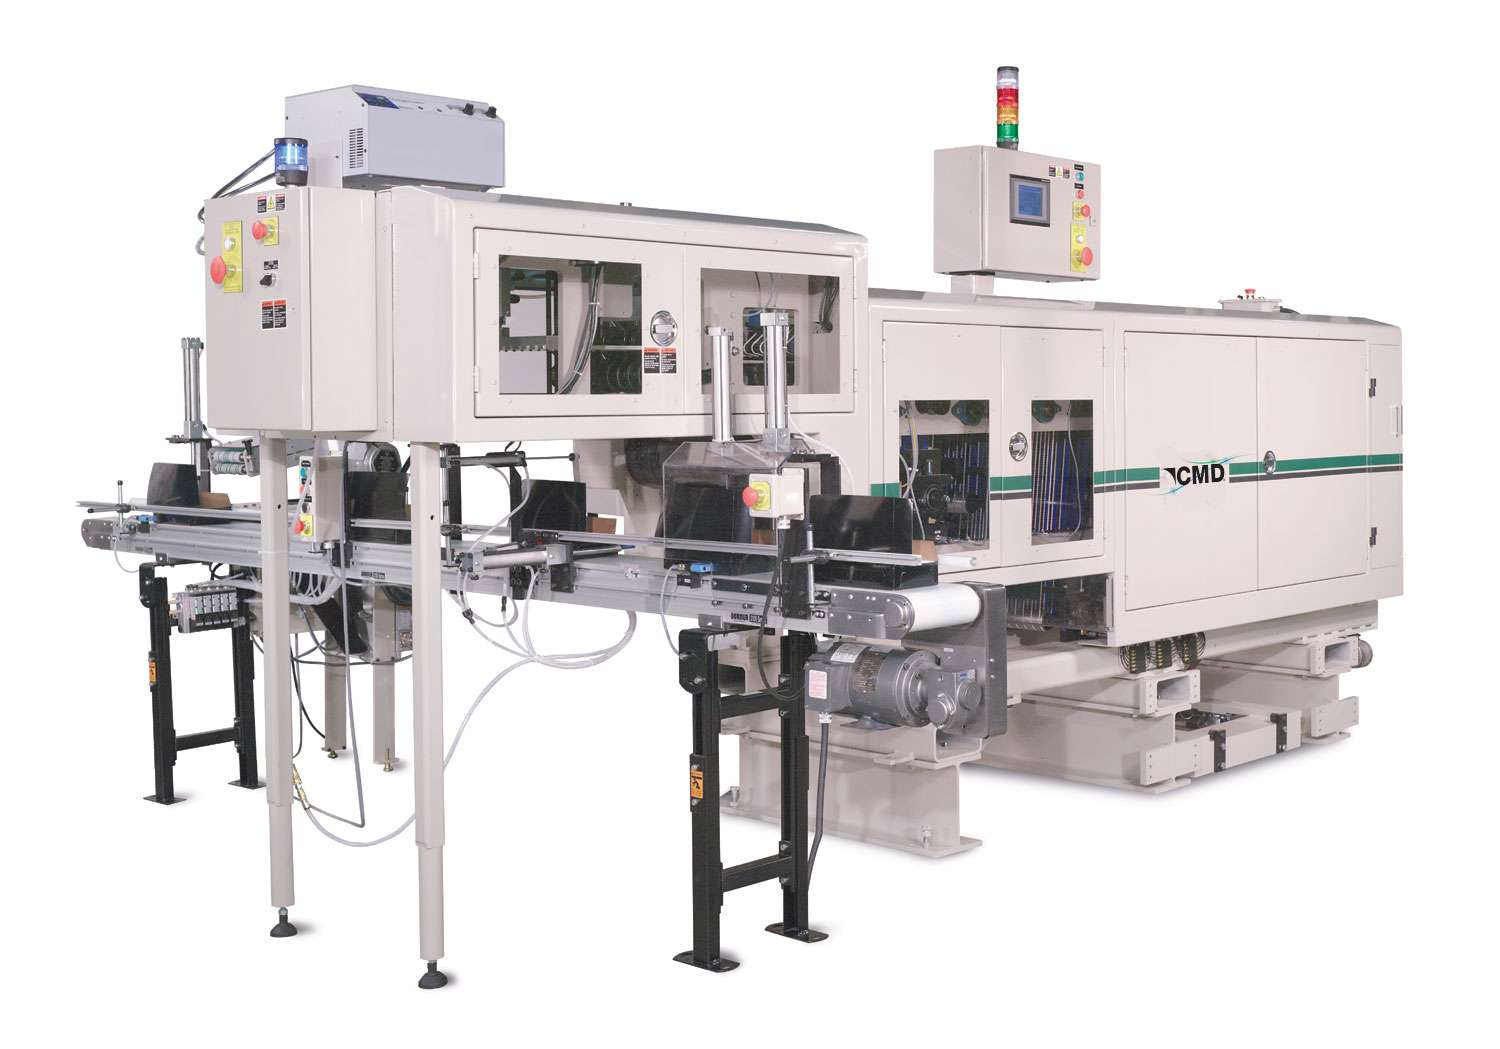 CMD Folder with Auto Stacker and Cross Conveyor